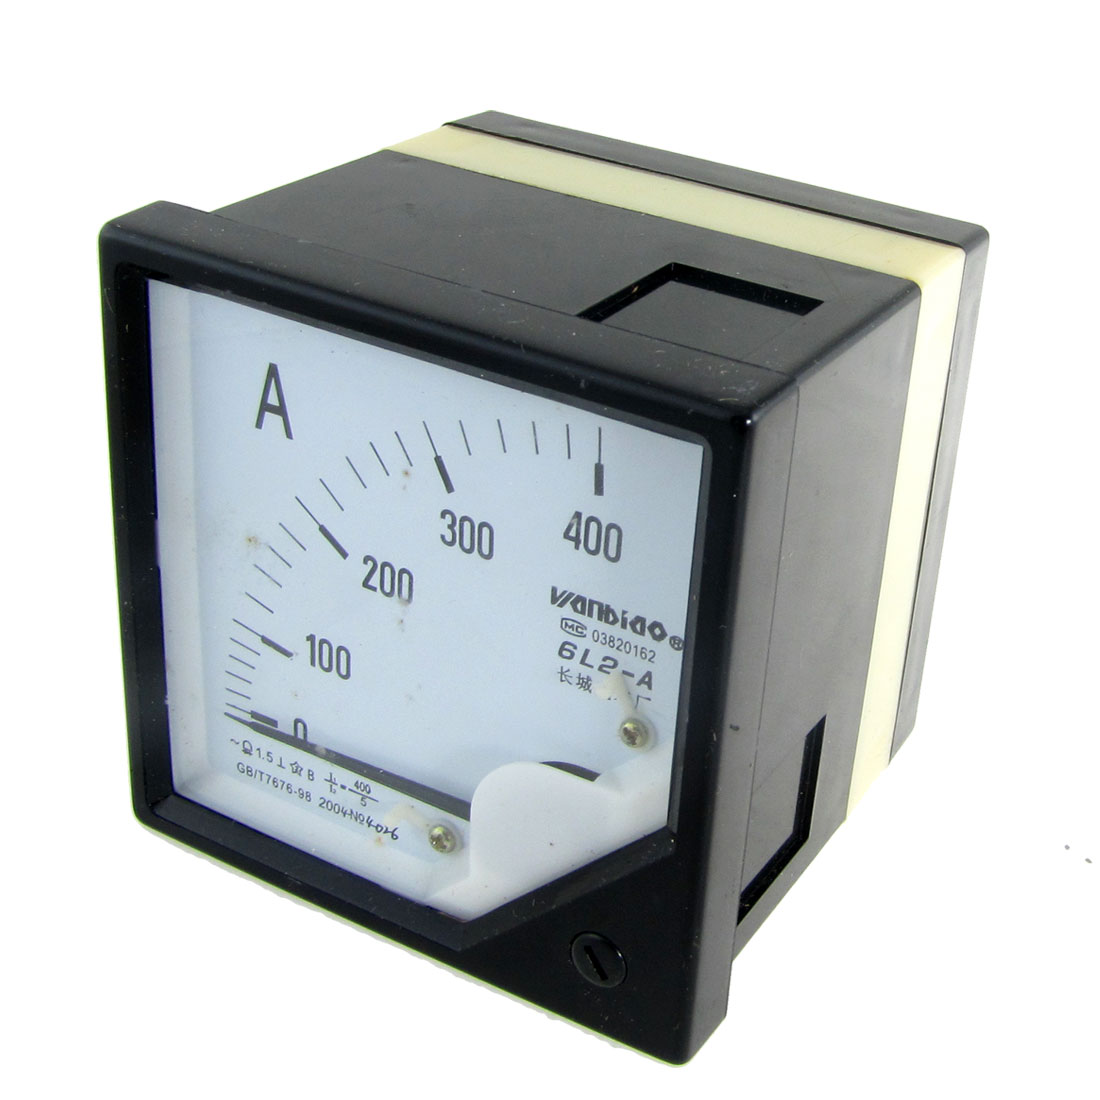 0-400A Analogue AC Ammeter Current Panel Meter 6L2-A